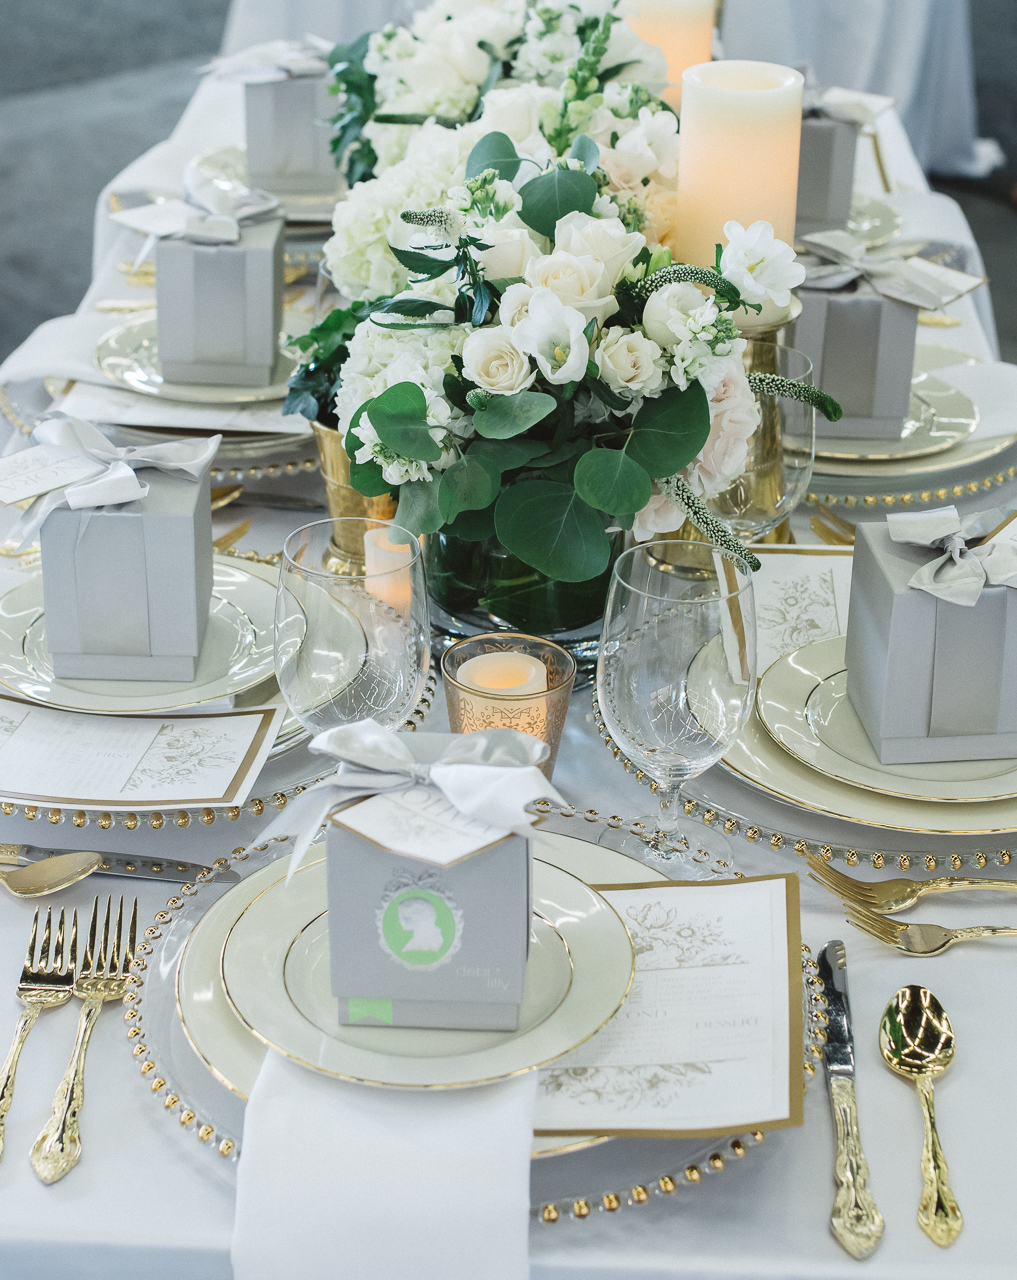 White Floral Bridal Shower Table Setting